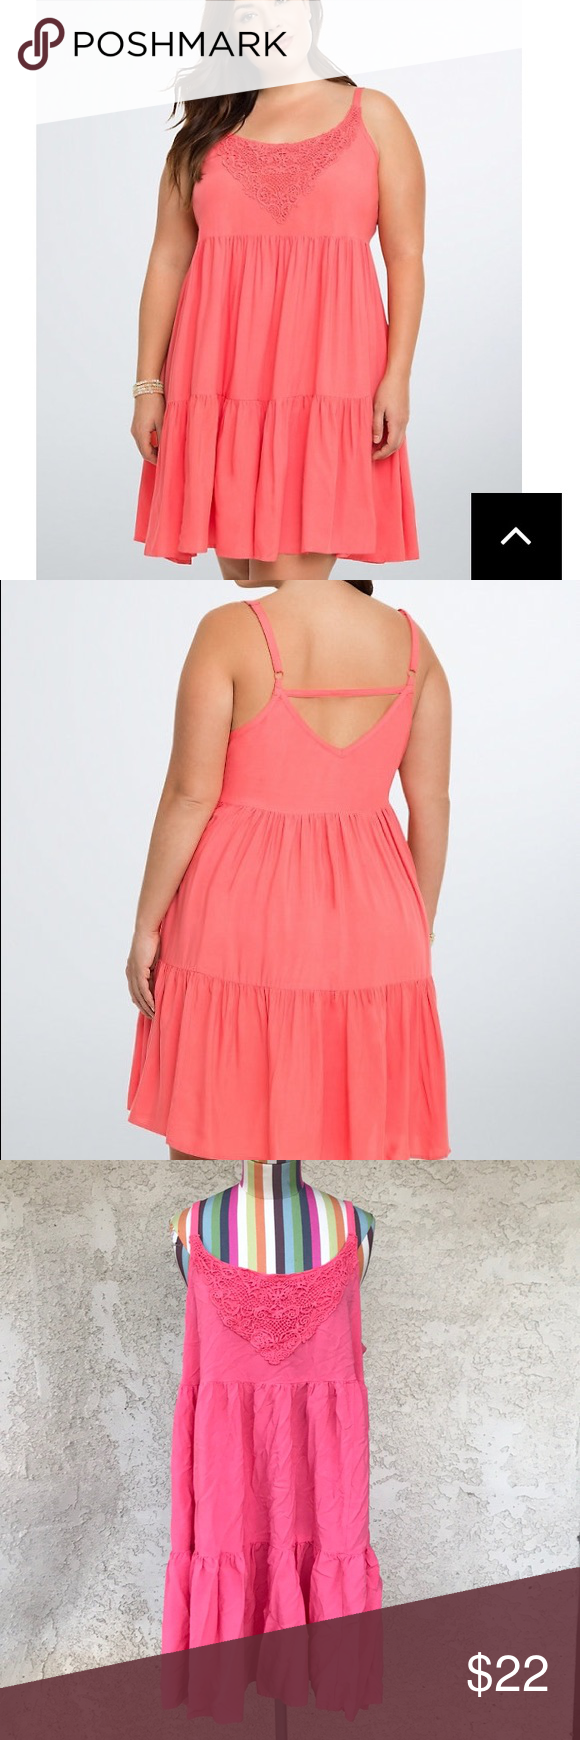 c37cbc0c55b Torrid Crochet Inset Tiered Trapeze Dress Cut with a lightweight flowy  coral challis